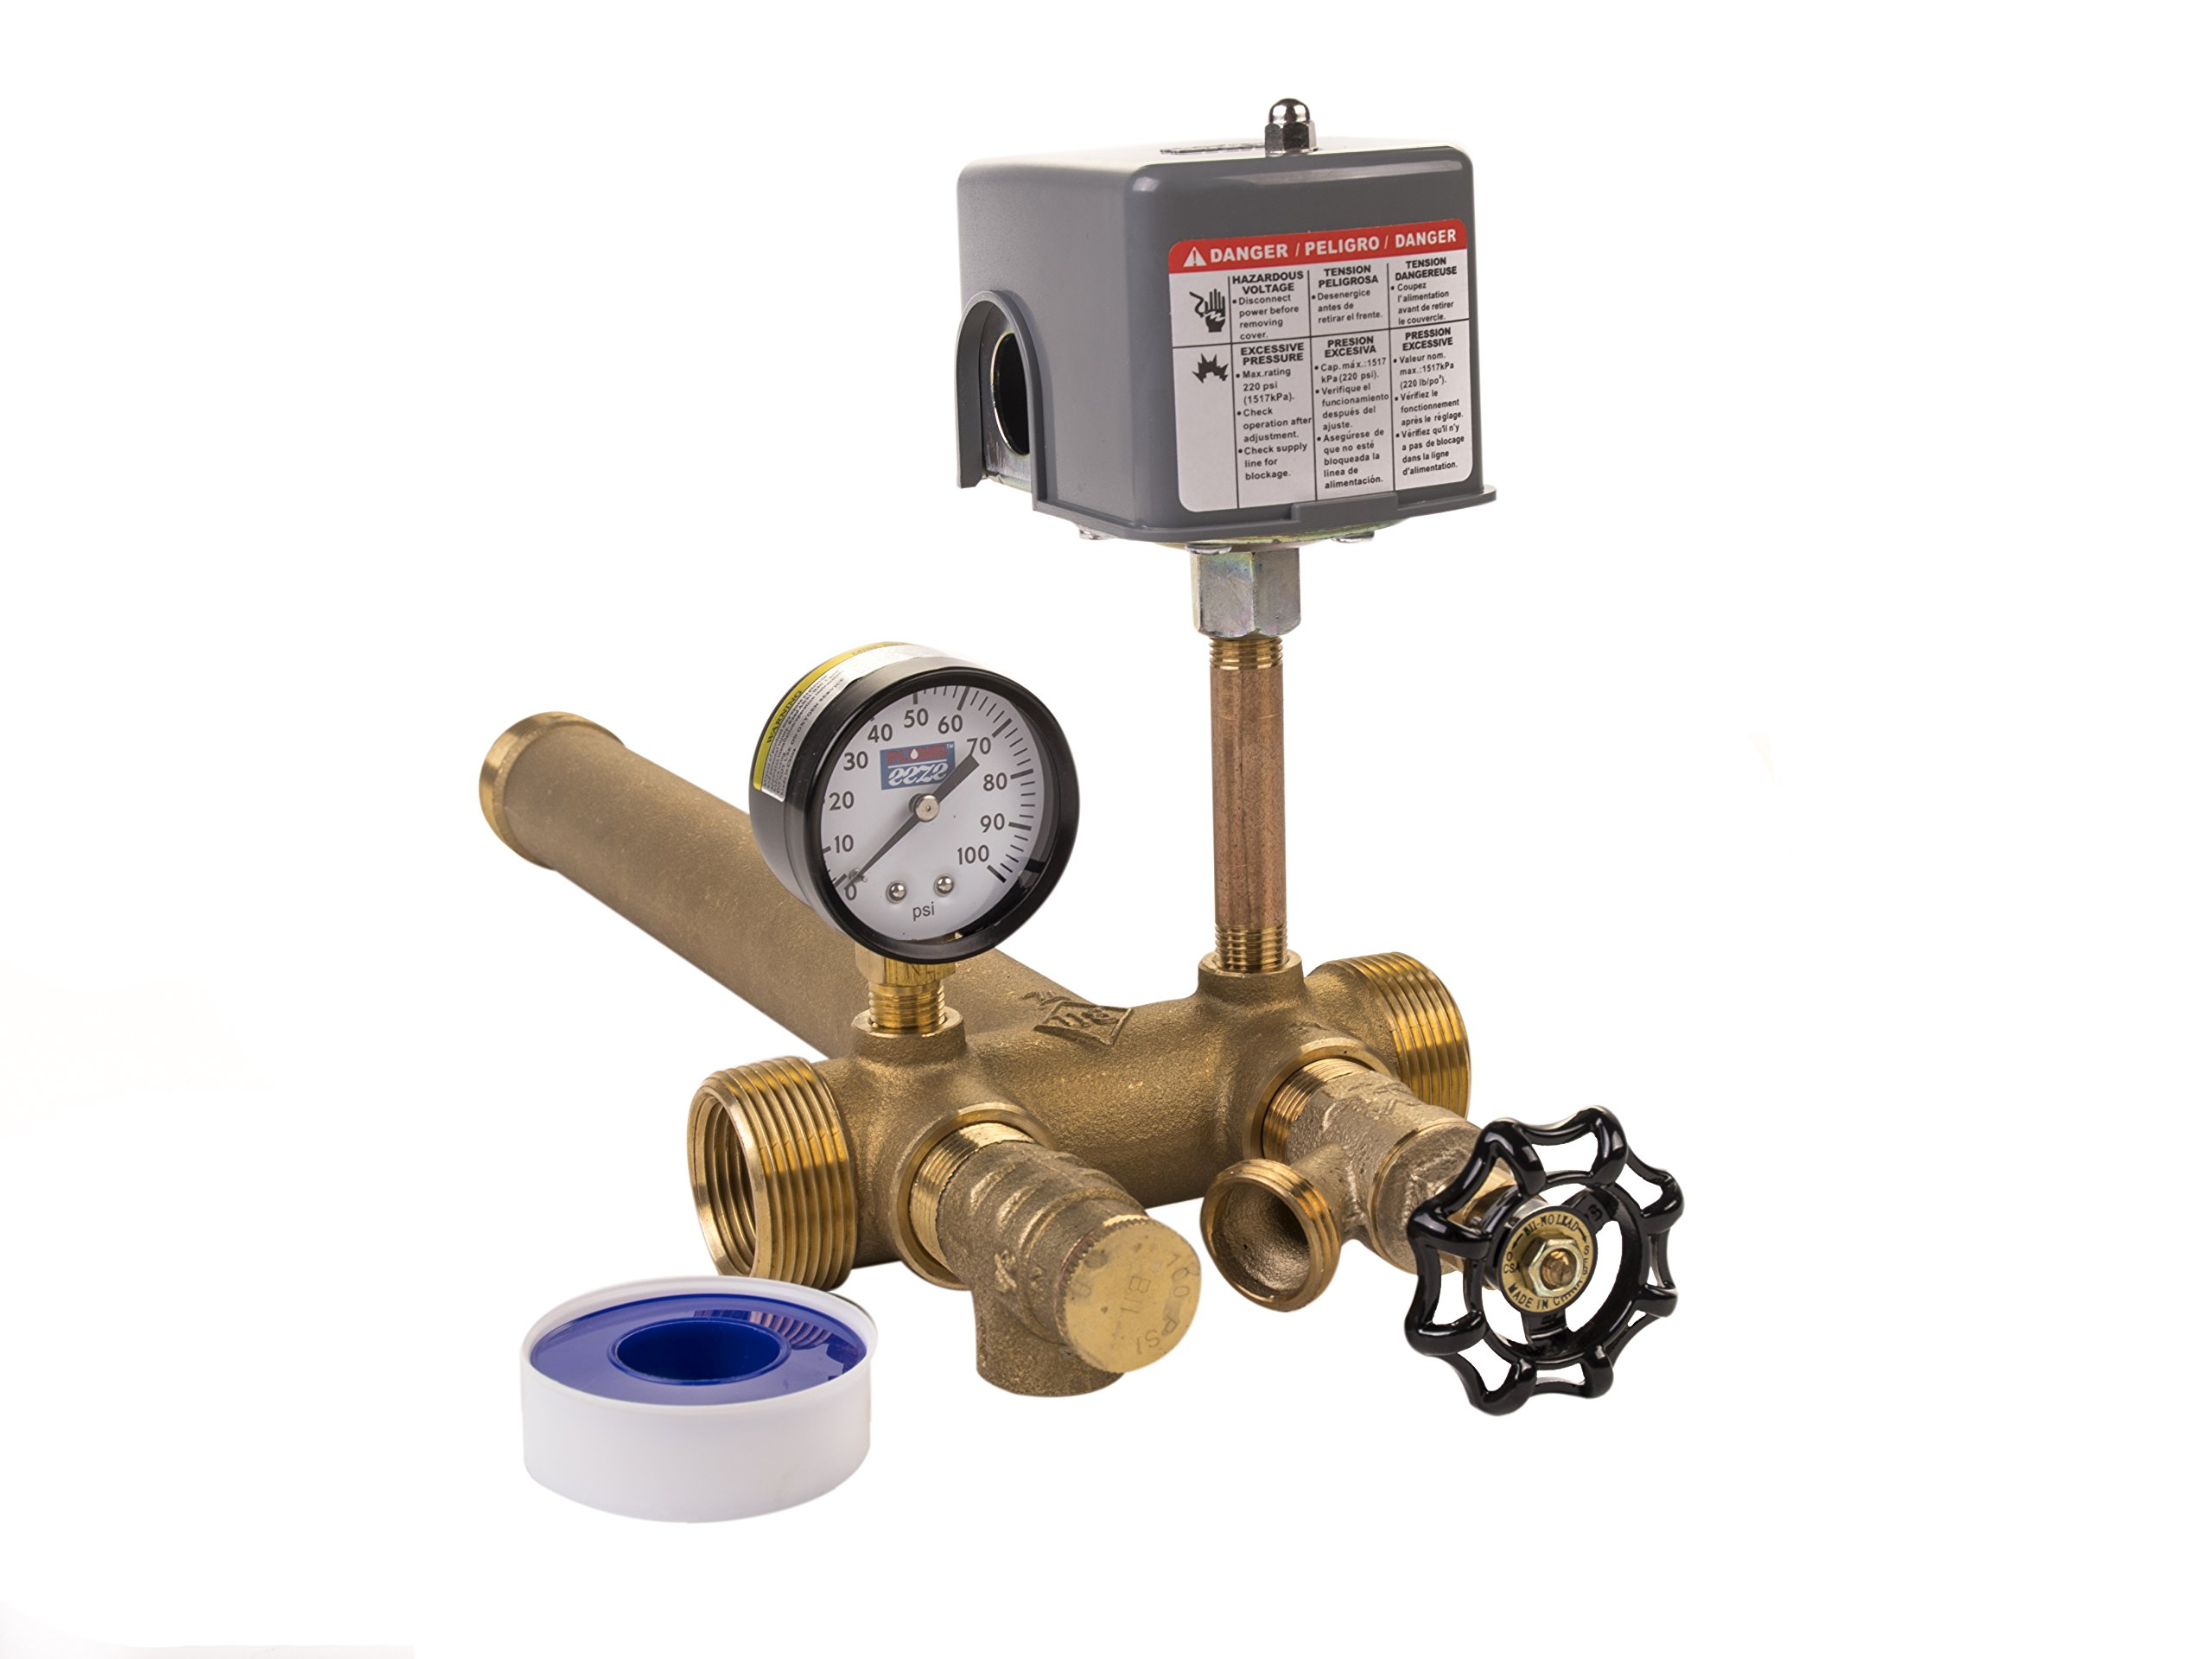 Plumb Eeze by Boshart 1.25 x 14 Tank Tee Kit Installation Water Well Pressure Tank with 40/60 pressure switch NO LEAD